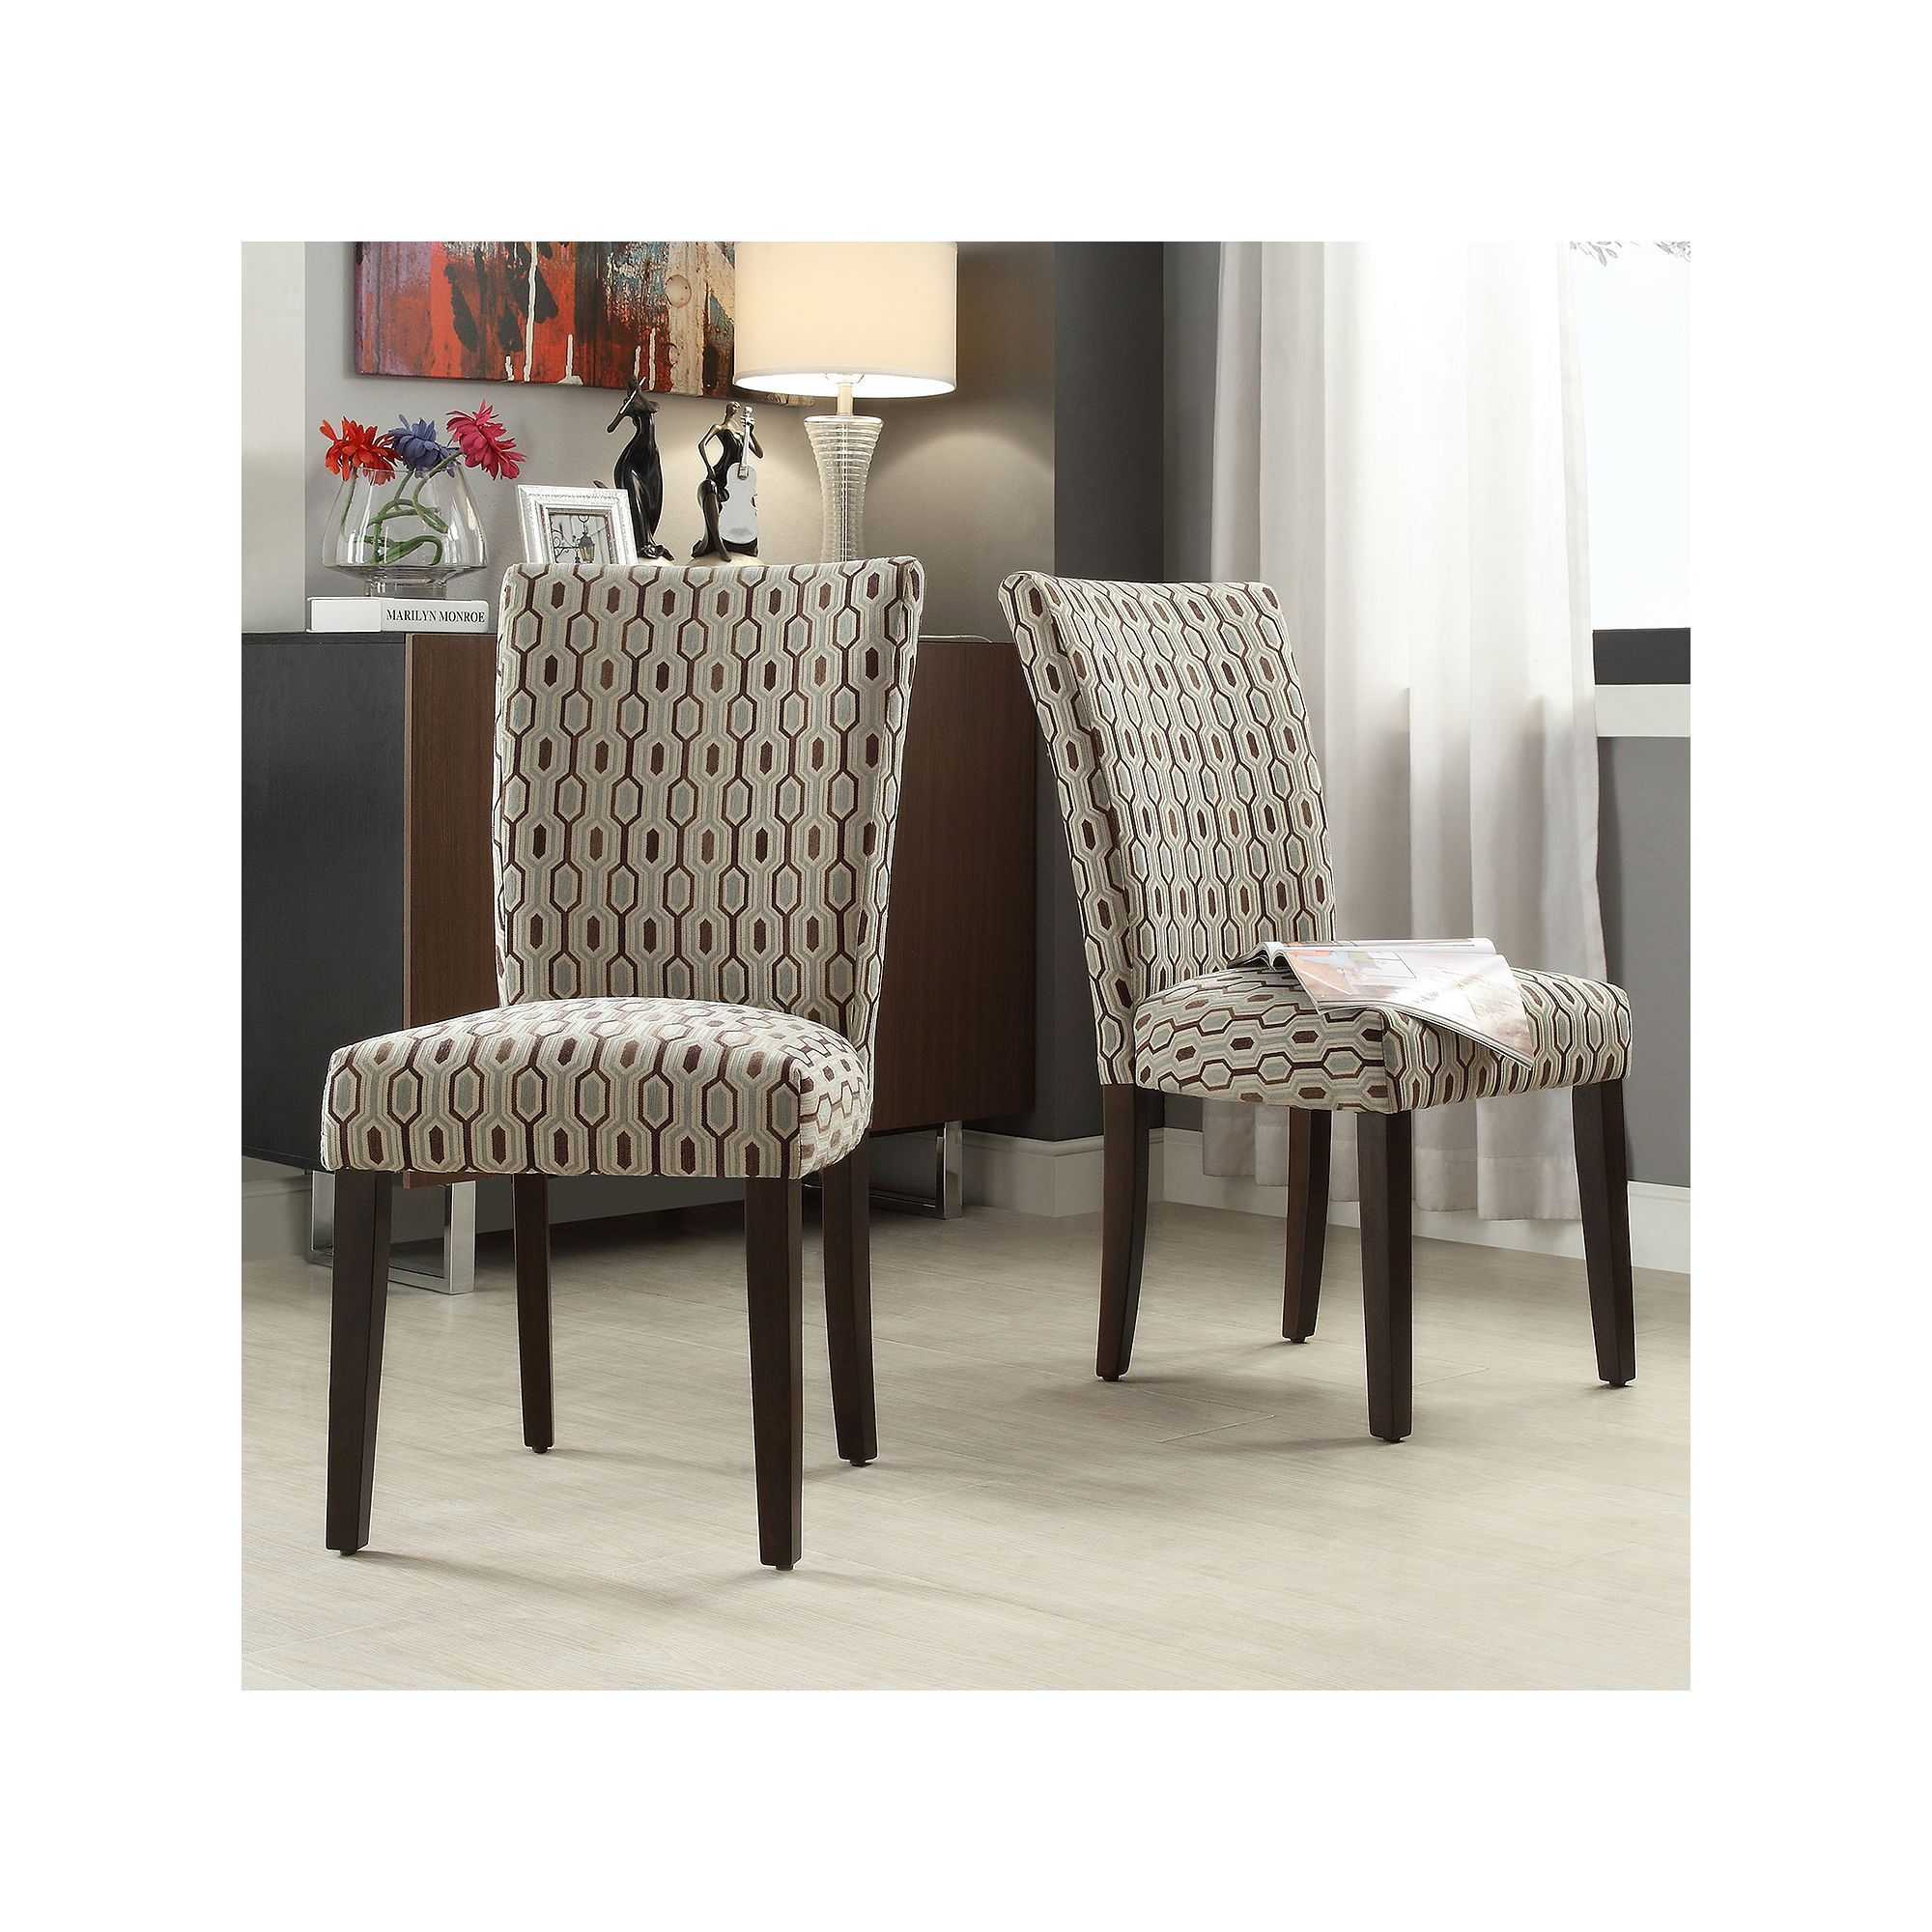 Homevance Denargo Printed Side Chair 2 Piece Set White